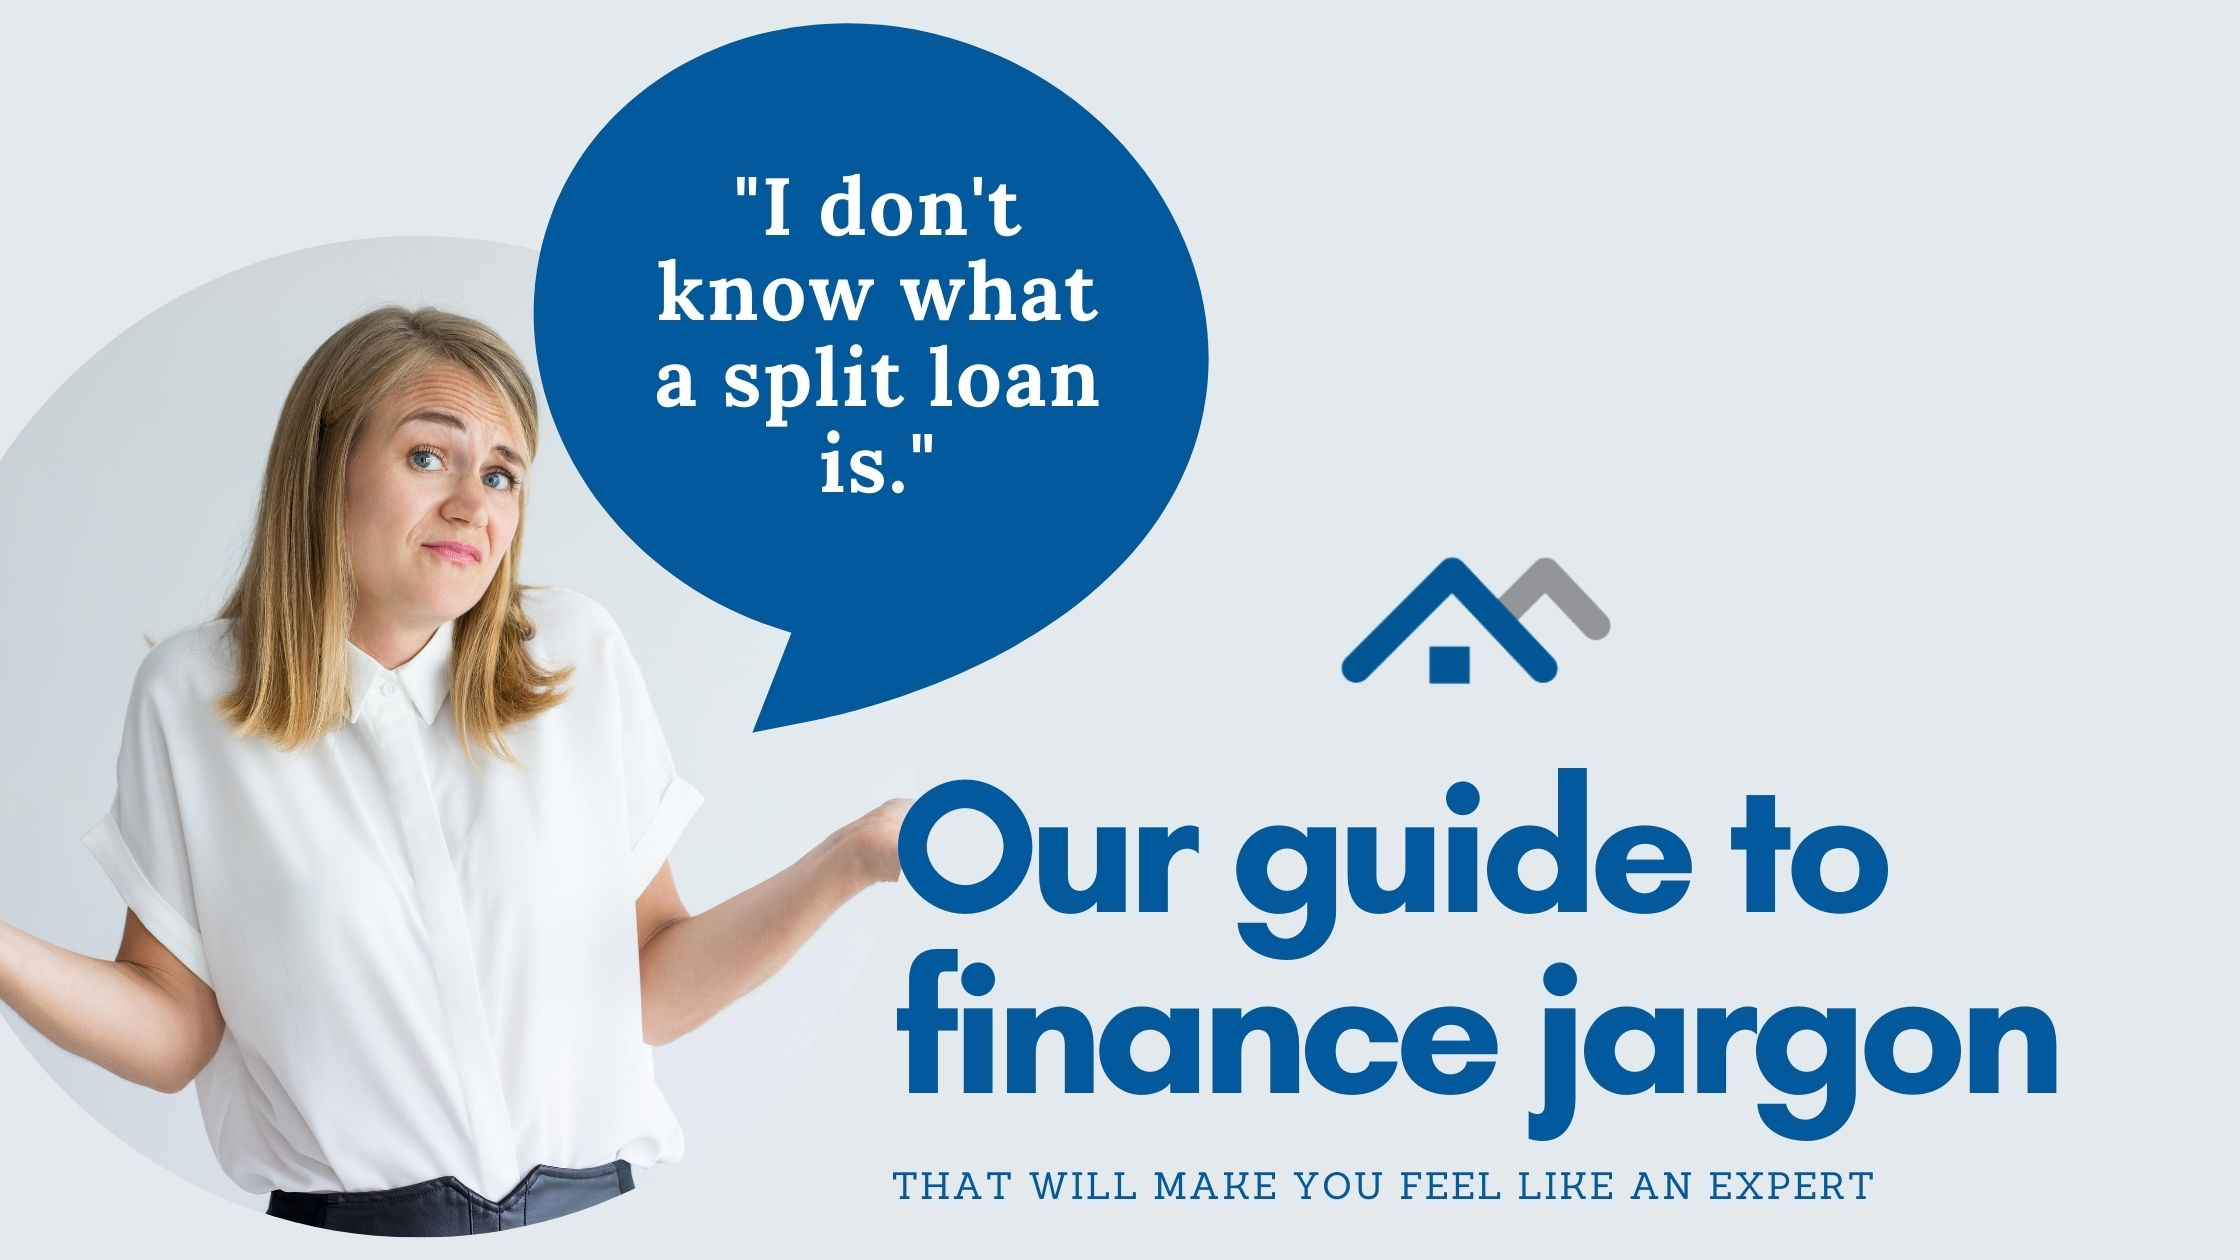 A quick guide to finance jargon